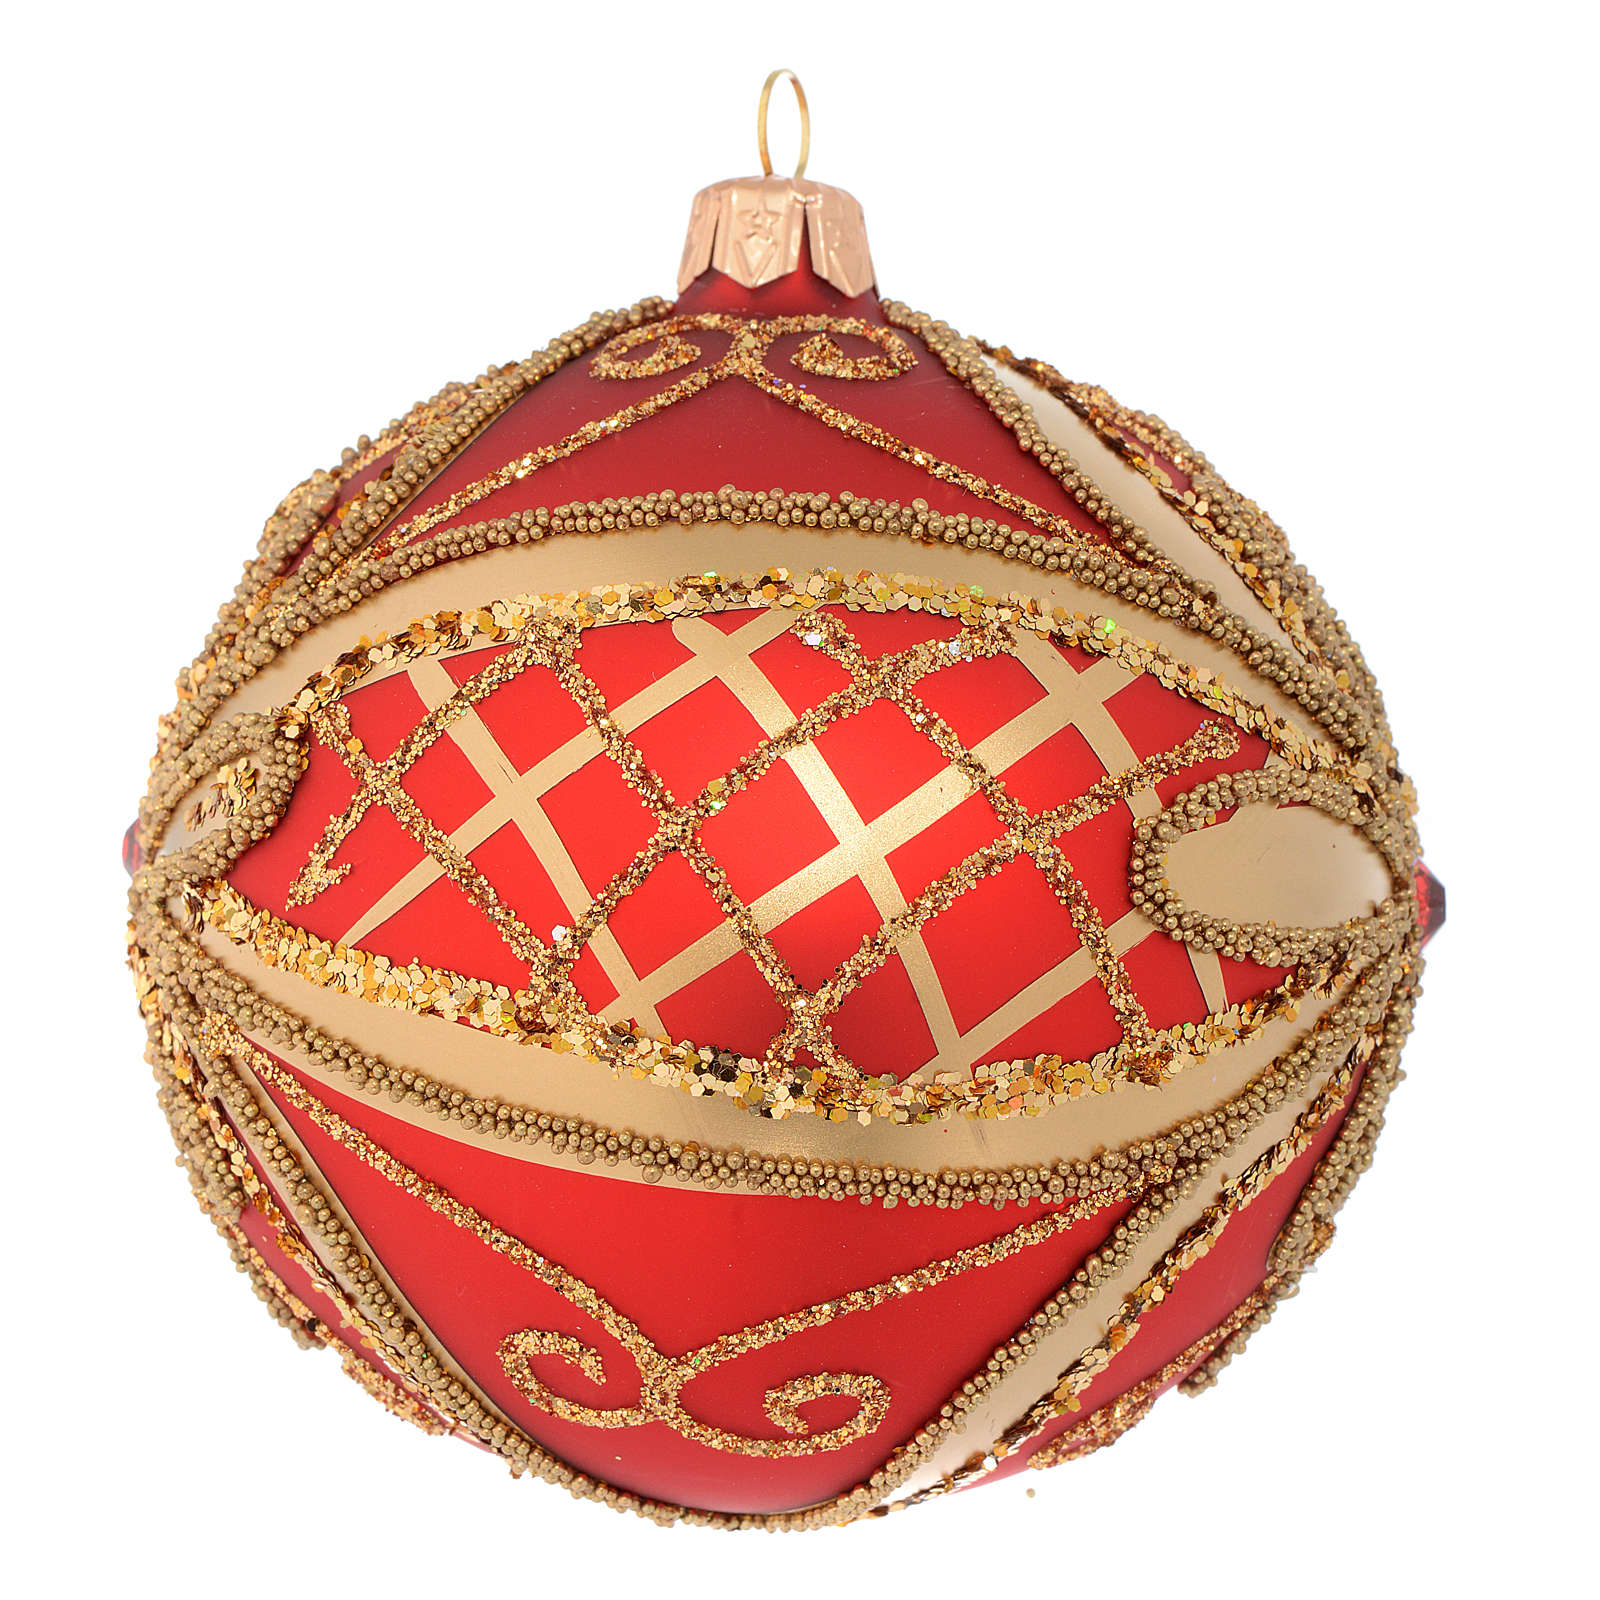 Christmas Bauble glittery red and gold 10cm 4